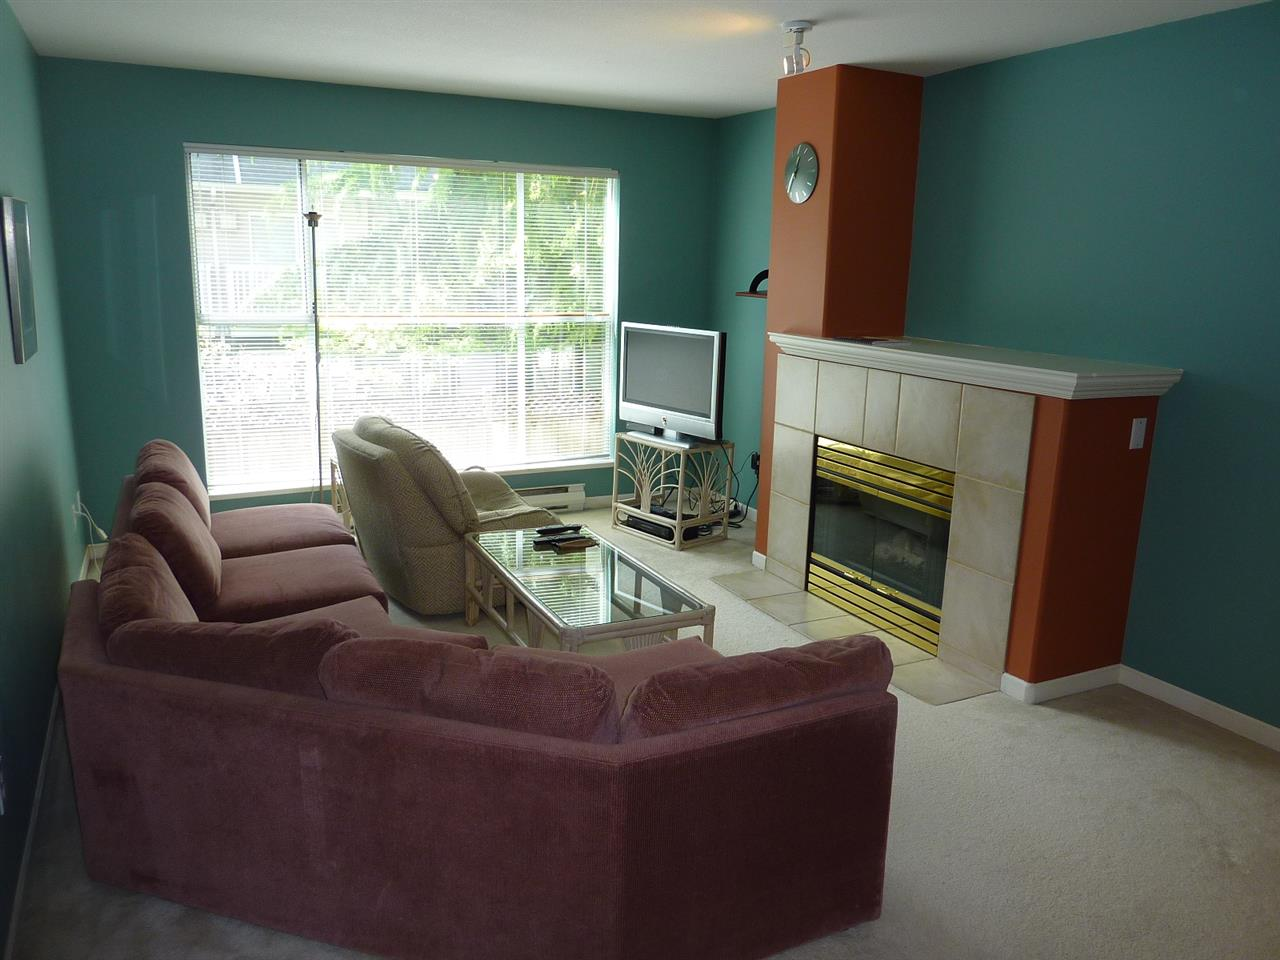 "Photo 4: 122 8880 JONES Road in Richmond: Brighouse South Condo for sale in ""REDONDA"" : MLS(r) # R2177657"